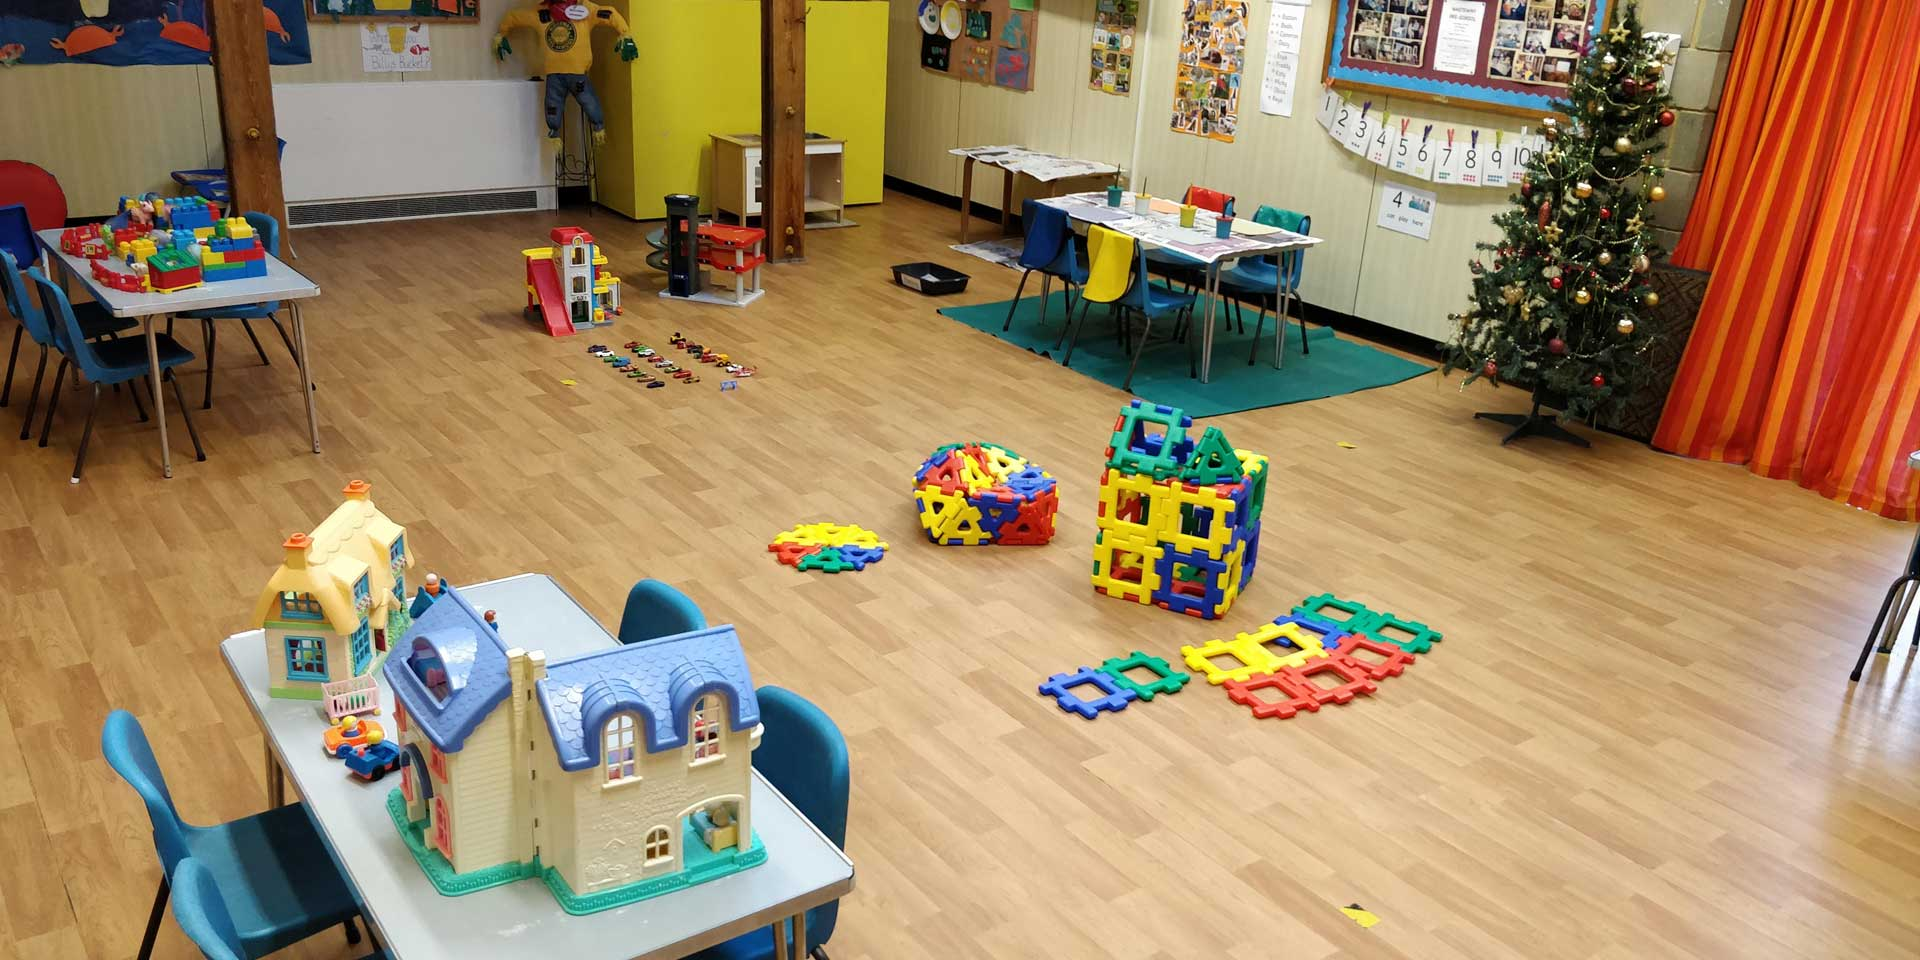 The main hall at Whiteway Nursery ready for the children